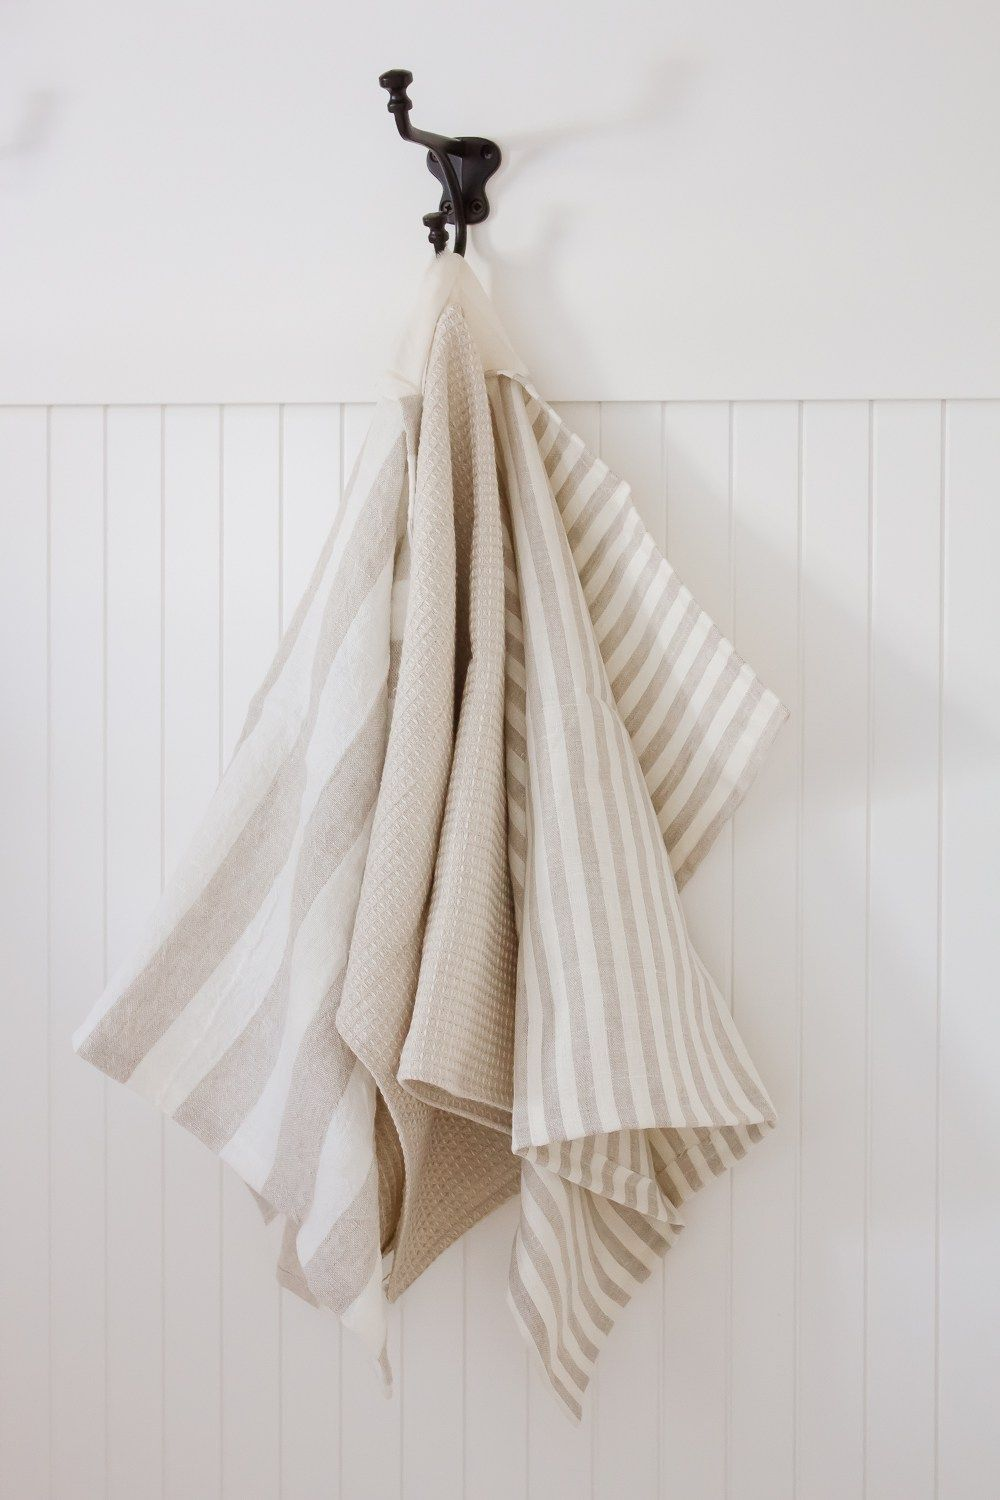 Farmhouse Style DIY Linen Dish Towel is part of Home Accessories Styling Simple - These simple farmhouse style DIY linen dish towels are SO quick + easy to make, even the newest of sewers…